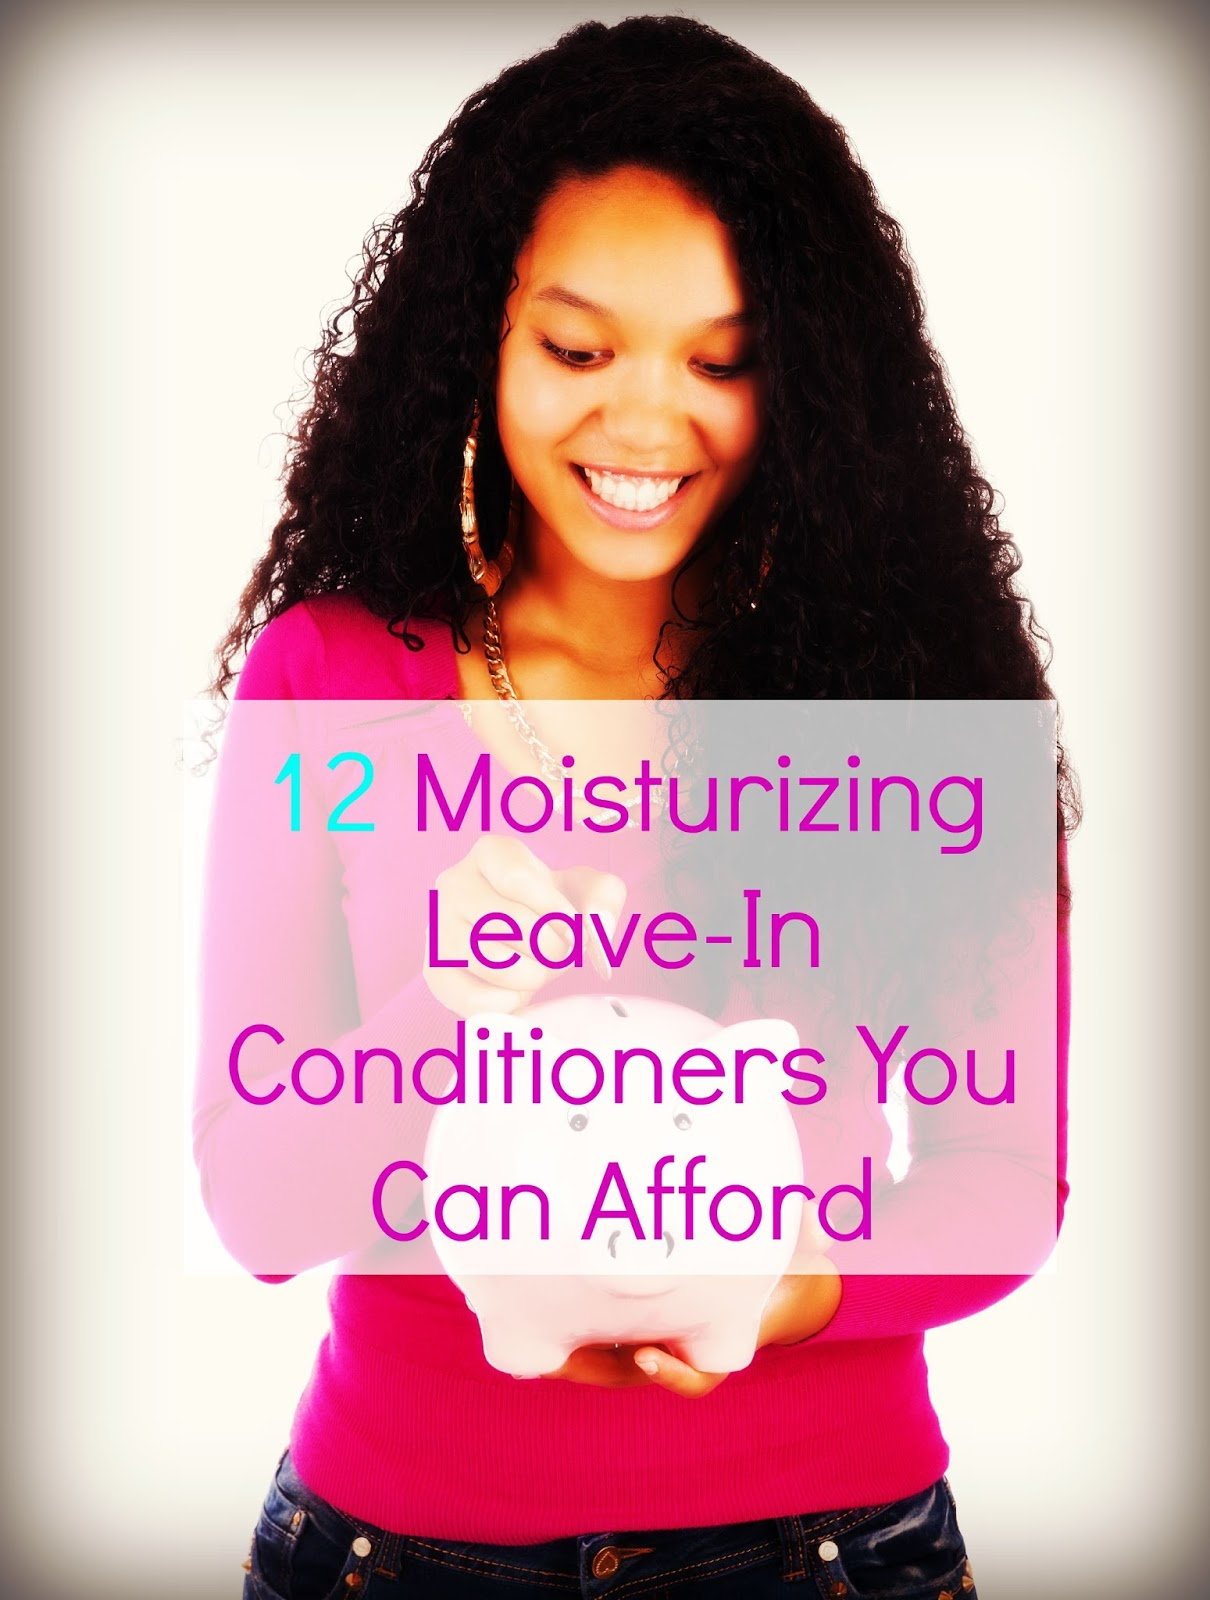 12 Moisturizing Leave-In Conditioners You Can Afford